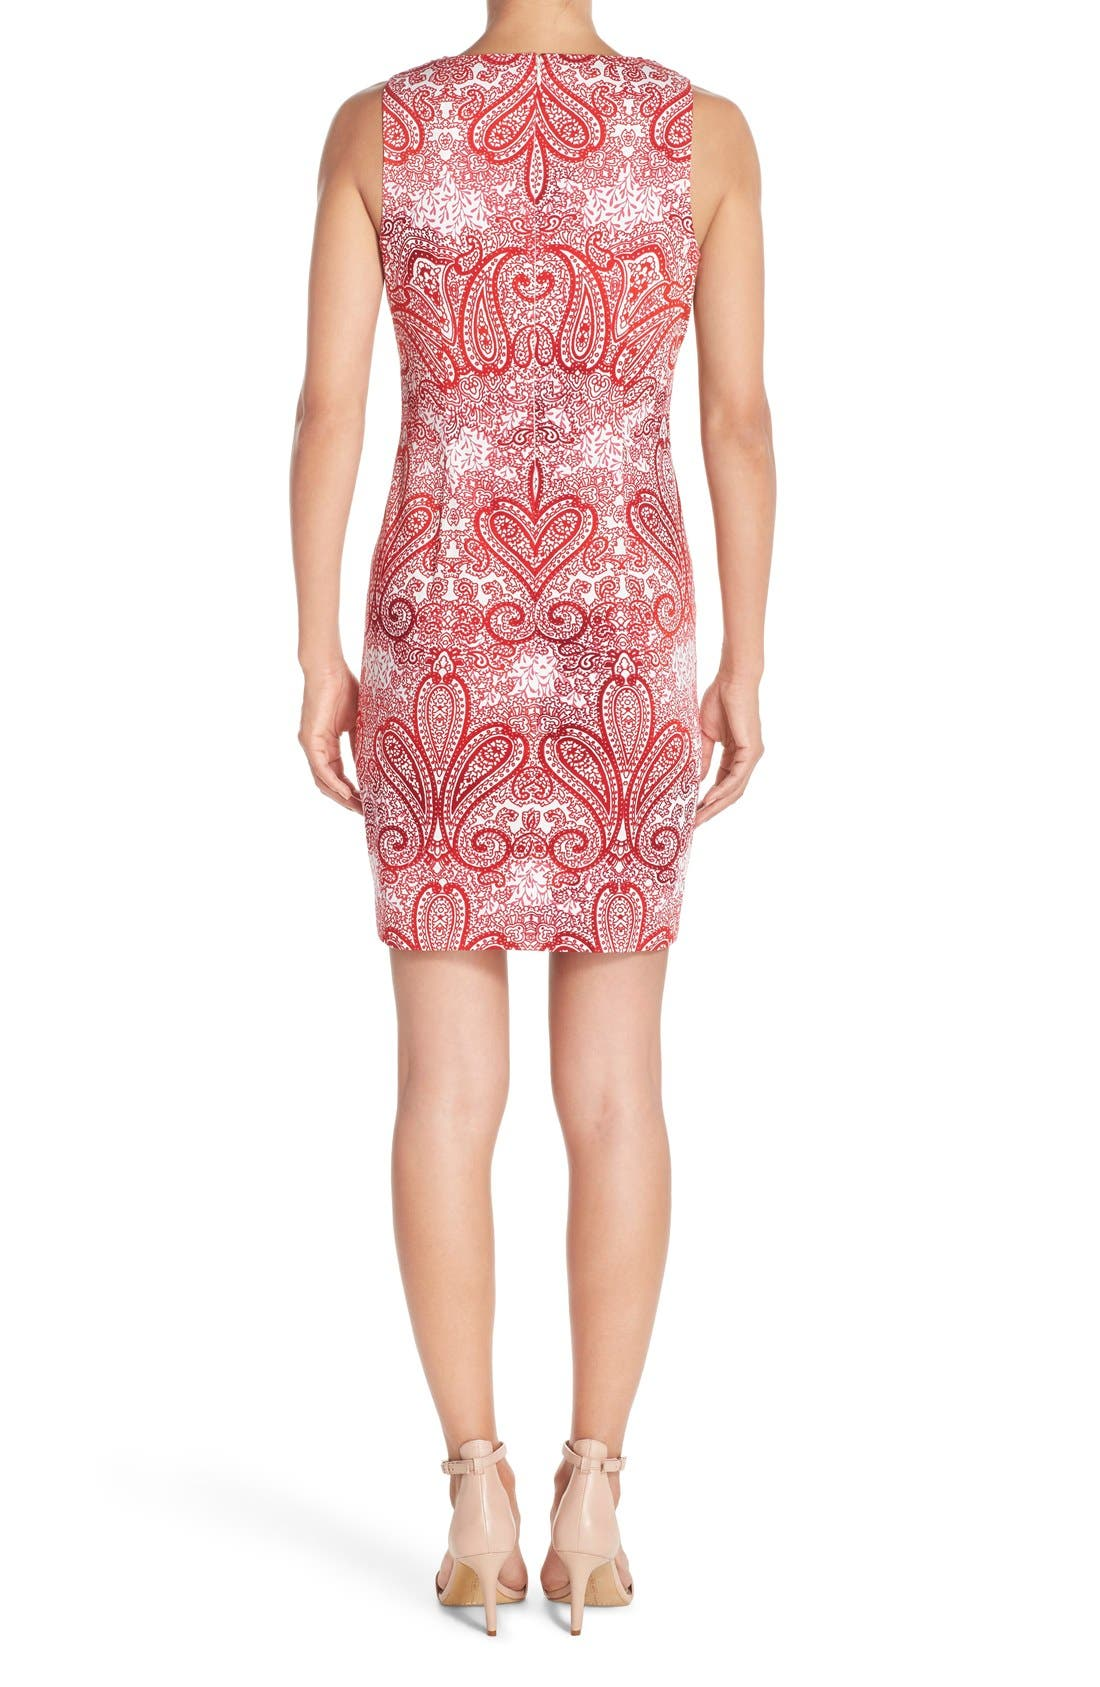 Alternate Image 2  - London Times 'Regal Ombré' Embellished Paisley Print Sleeveless Shift Dress